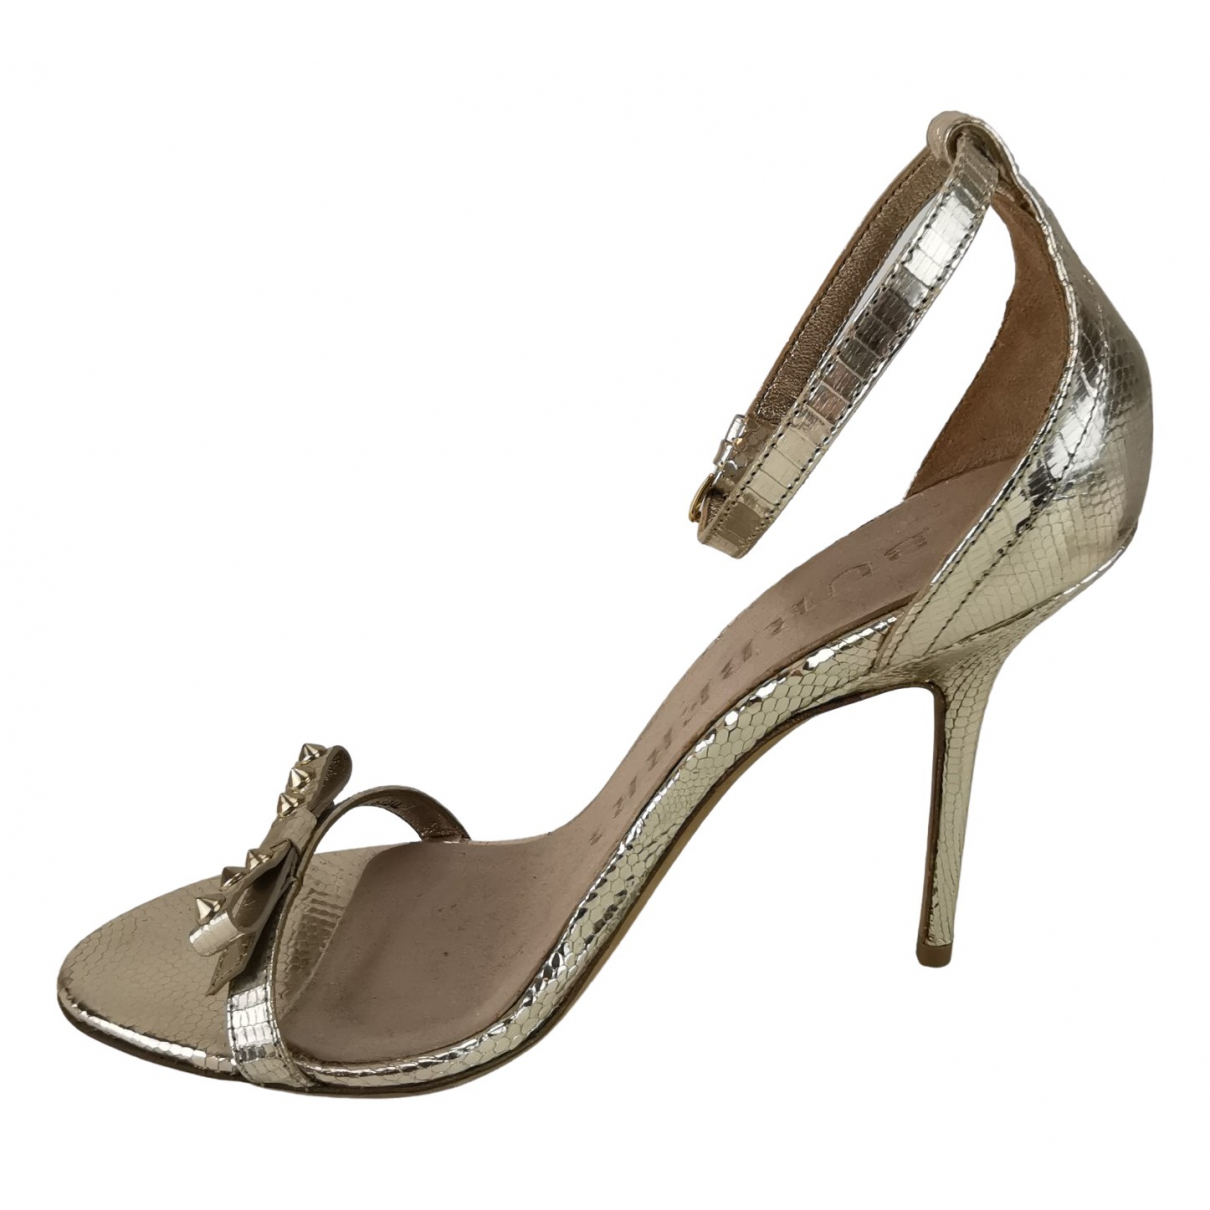 Burberry \N Silver Leather Sandals for Women 37 EU